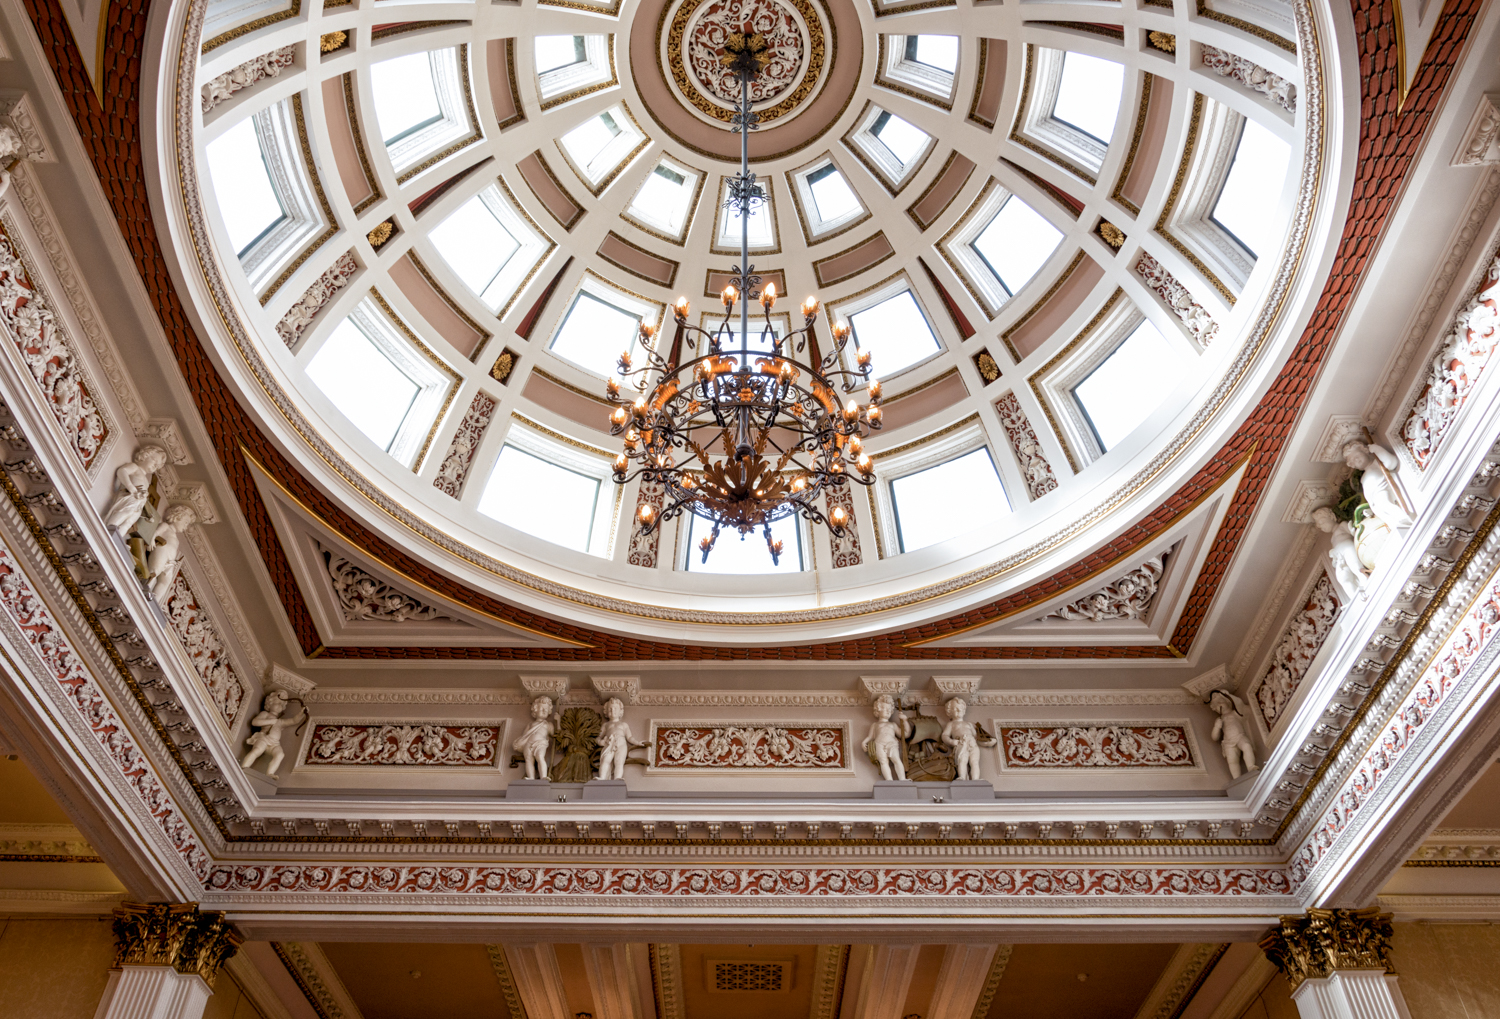 The delightful domed ceiling in the Merchants' Hall